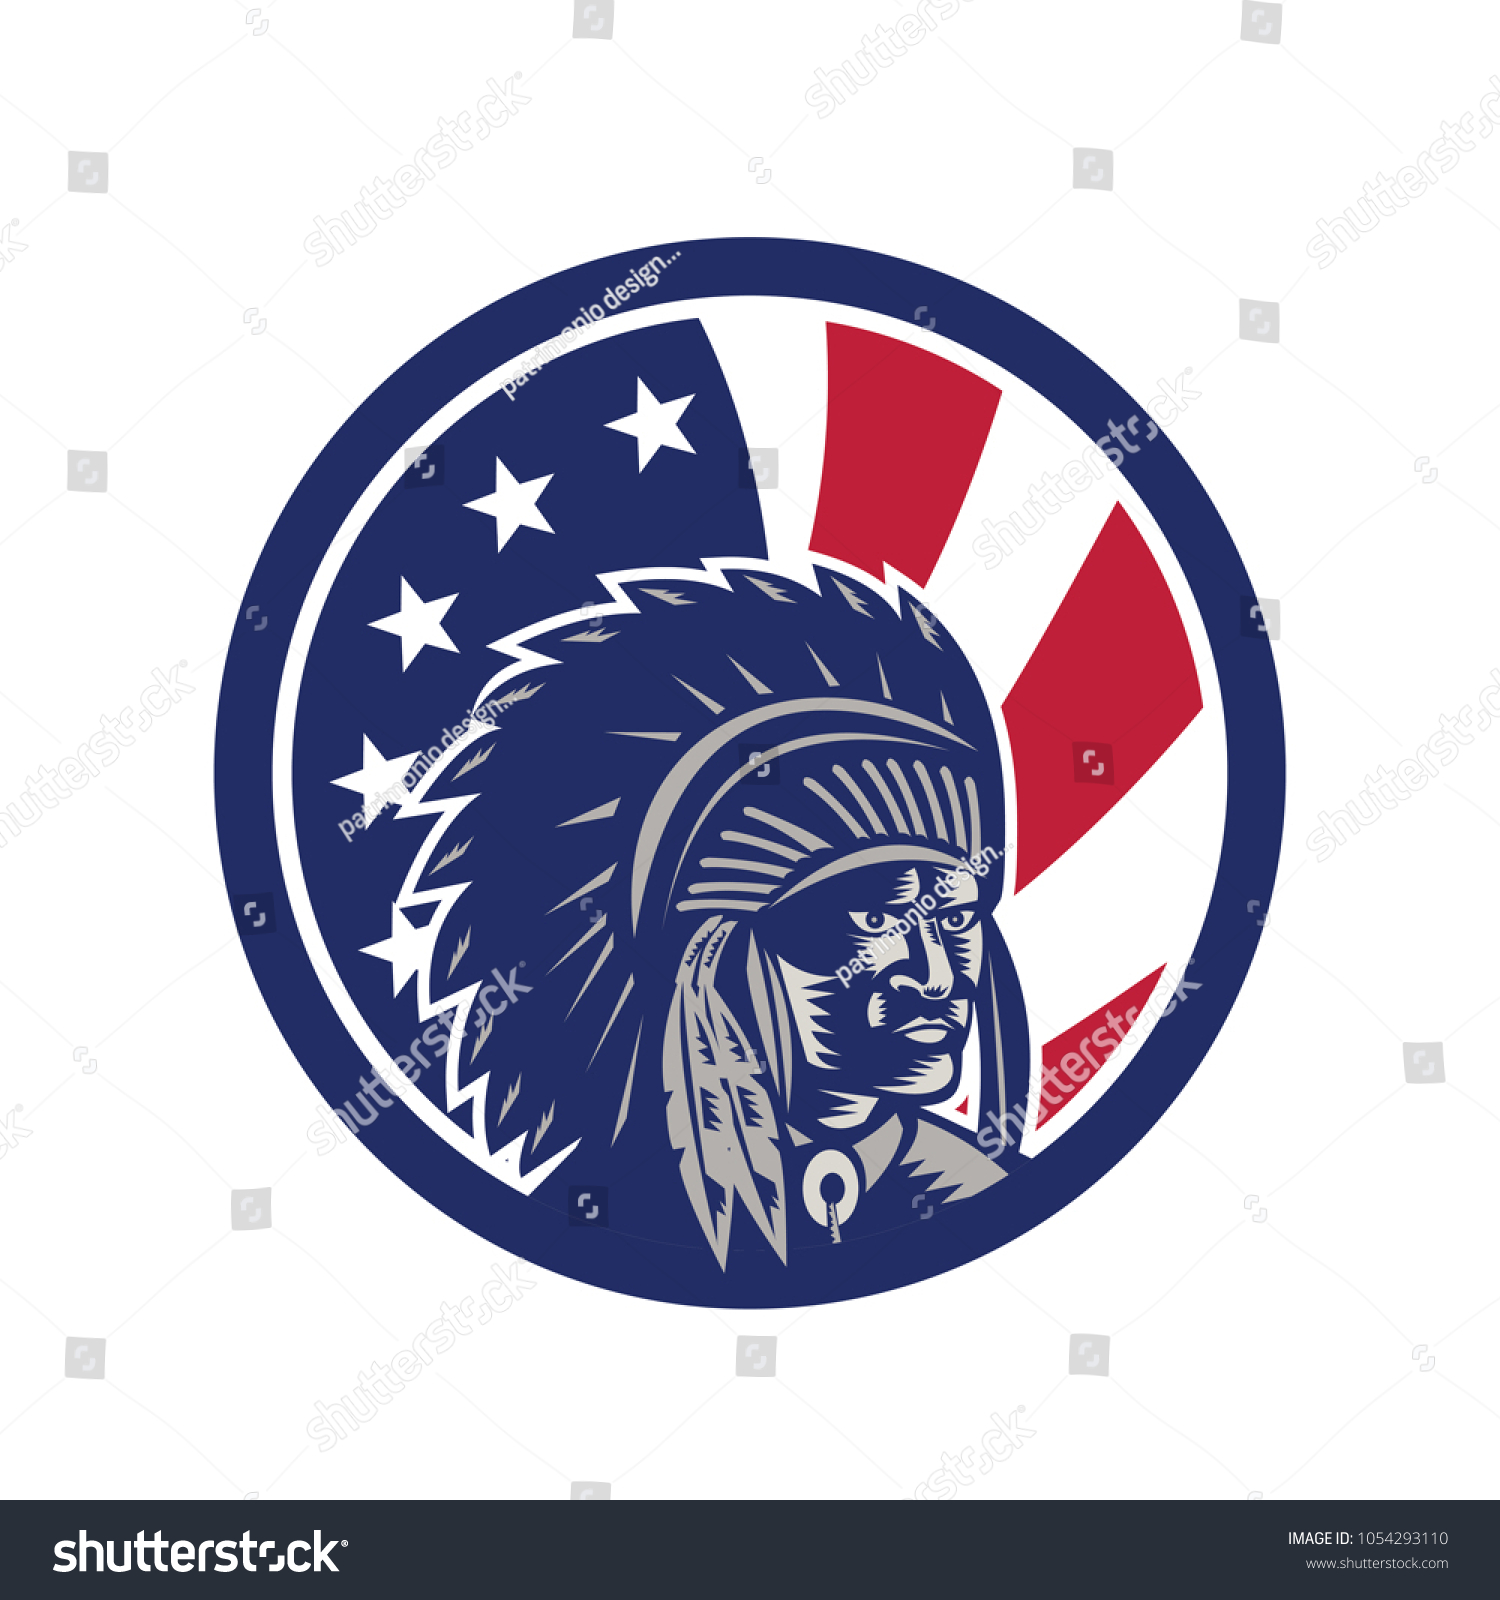 Icon Retro Style Illustration Native American Stock Vector Royalty